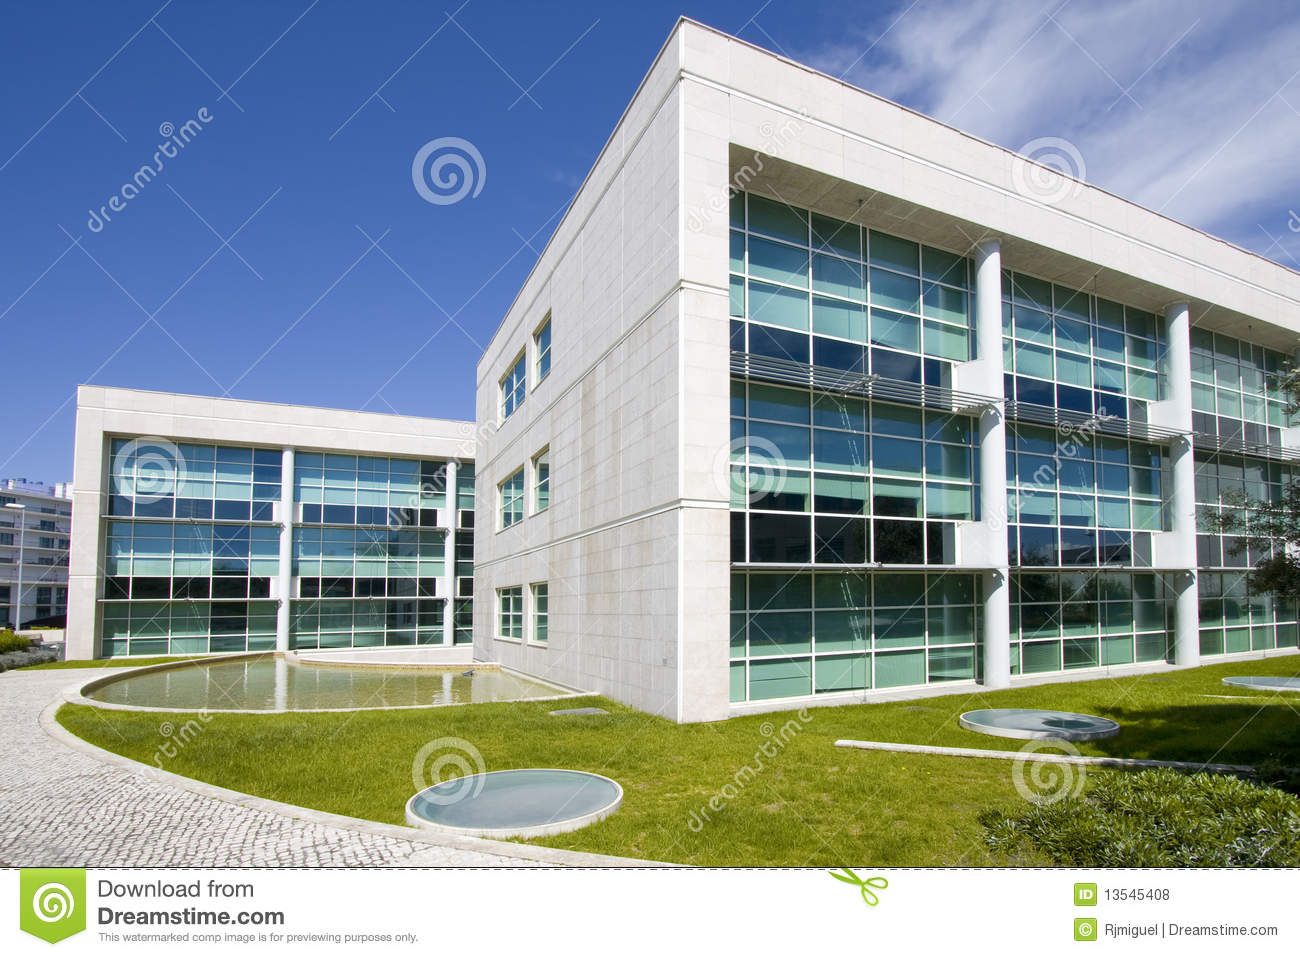 Exterior view of downtown city office buildings royalty for Modern office building design concepts exterior